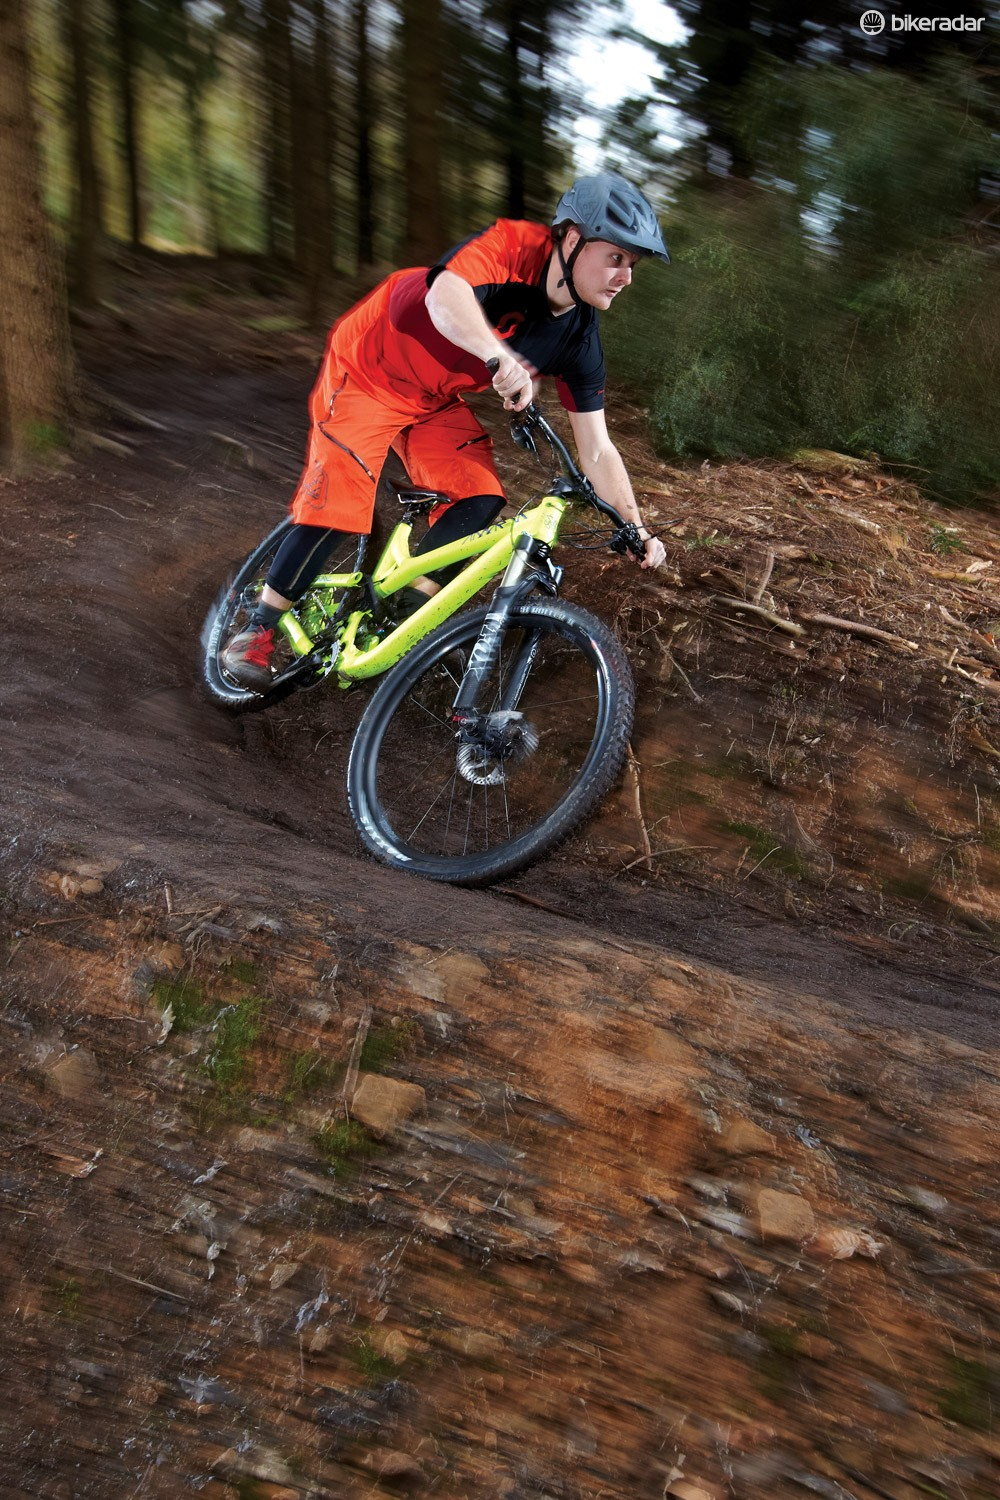 Commencal's Meta frame design puts all the suspension weight as low and central as possible for maximum stability